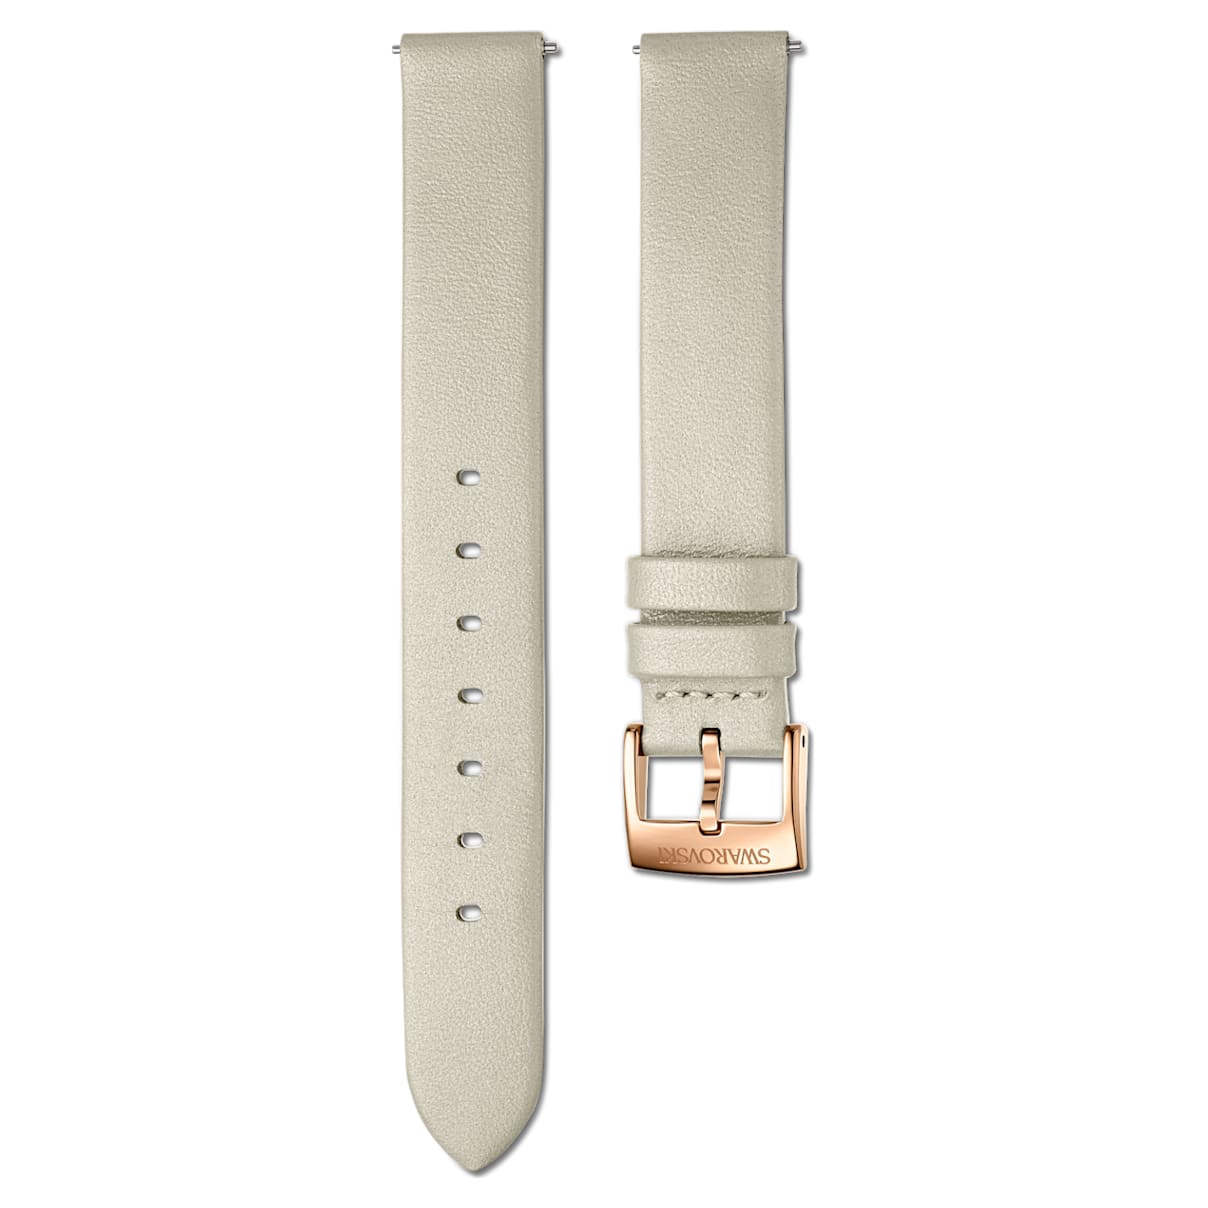 14mm Watch strap, Leather, Taupe, Rose-gold tone PVD